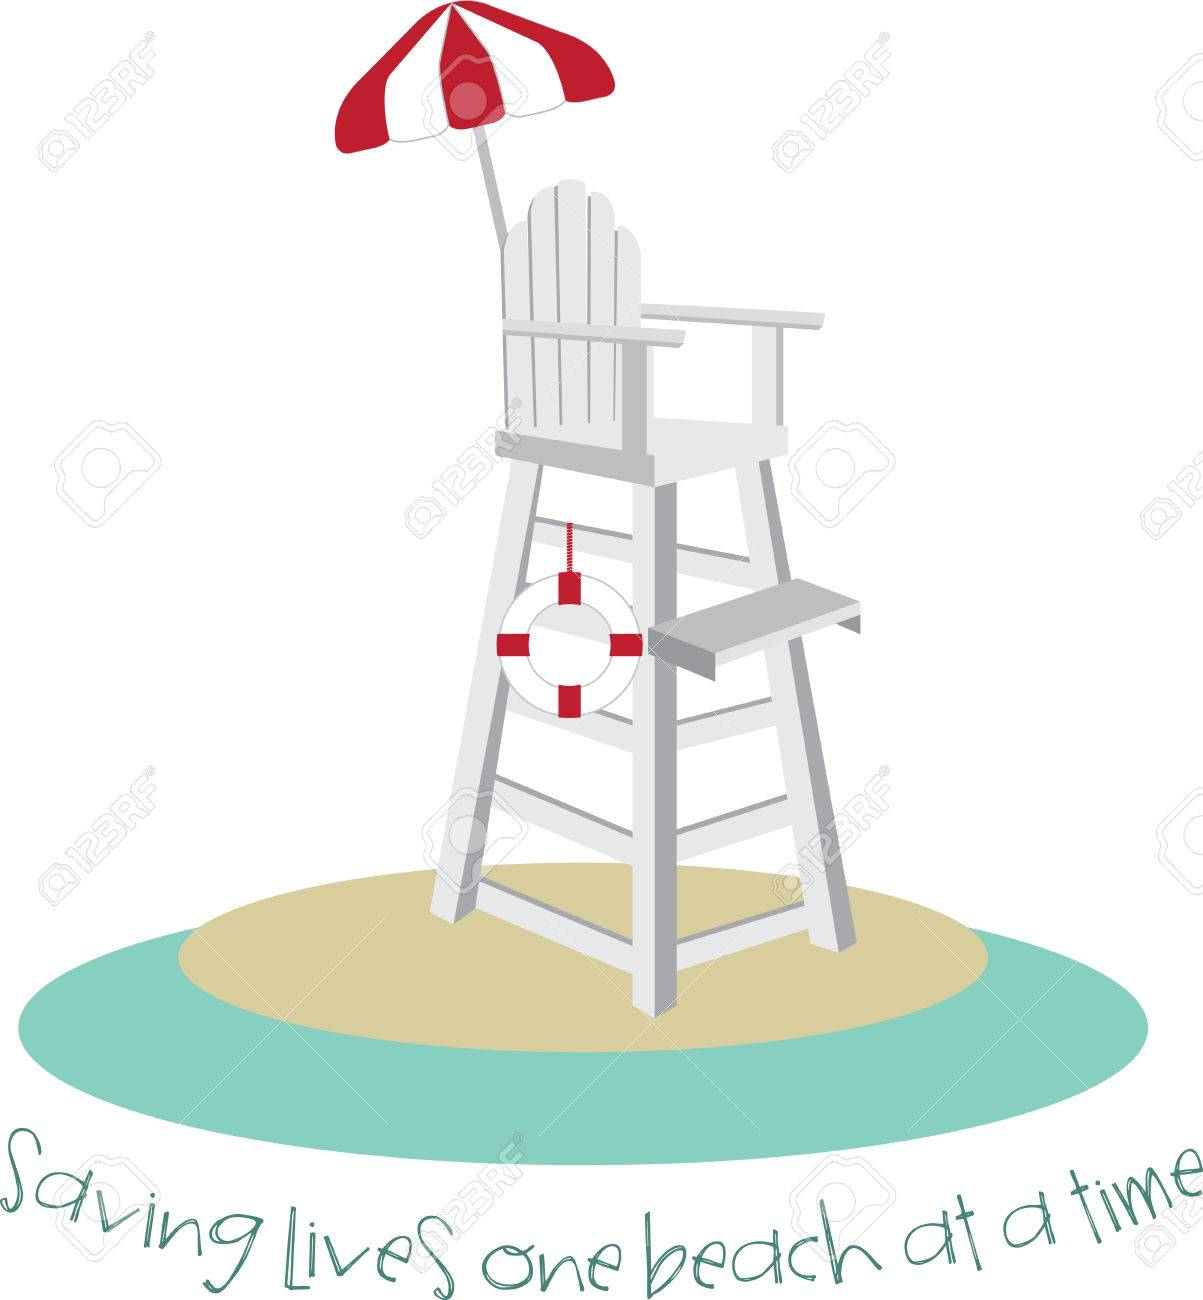 1203x1300 Tall Lifeguard Chair With A Red And White Umbrella. Royalty Free